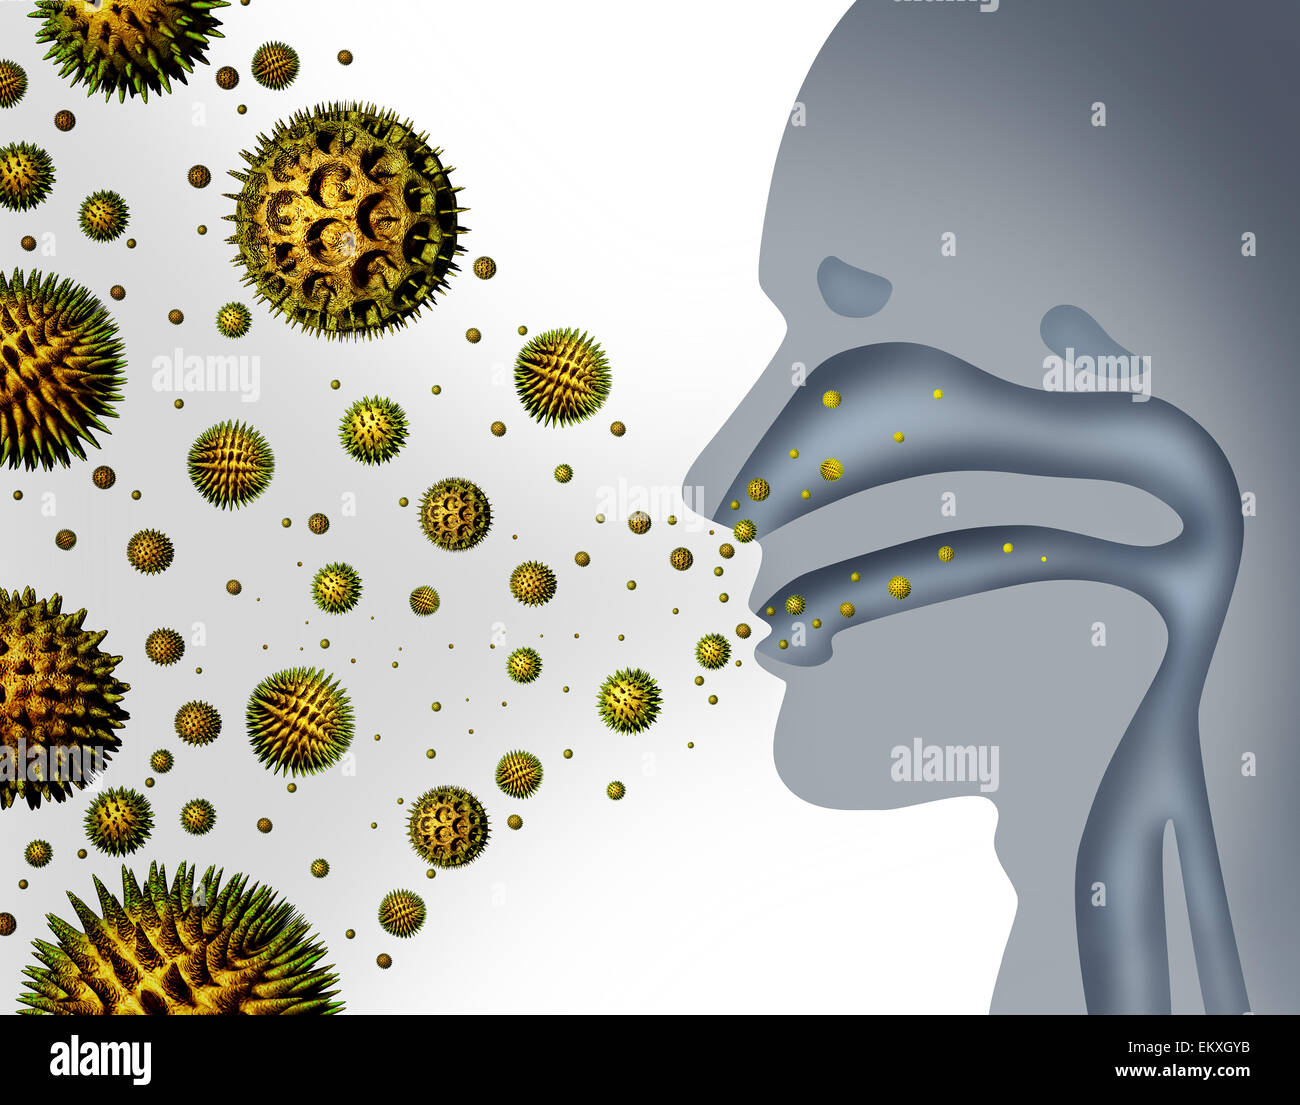 Hay fever and pollen allergies and medical allergy concept as a group of microscopic organic pollination particles - Stock Image